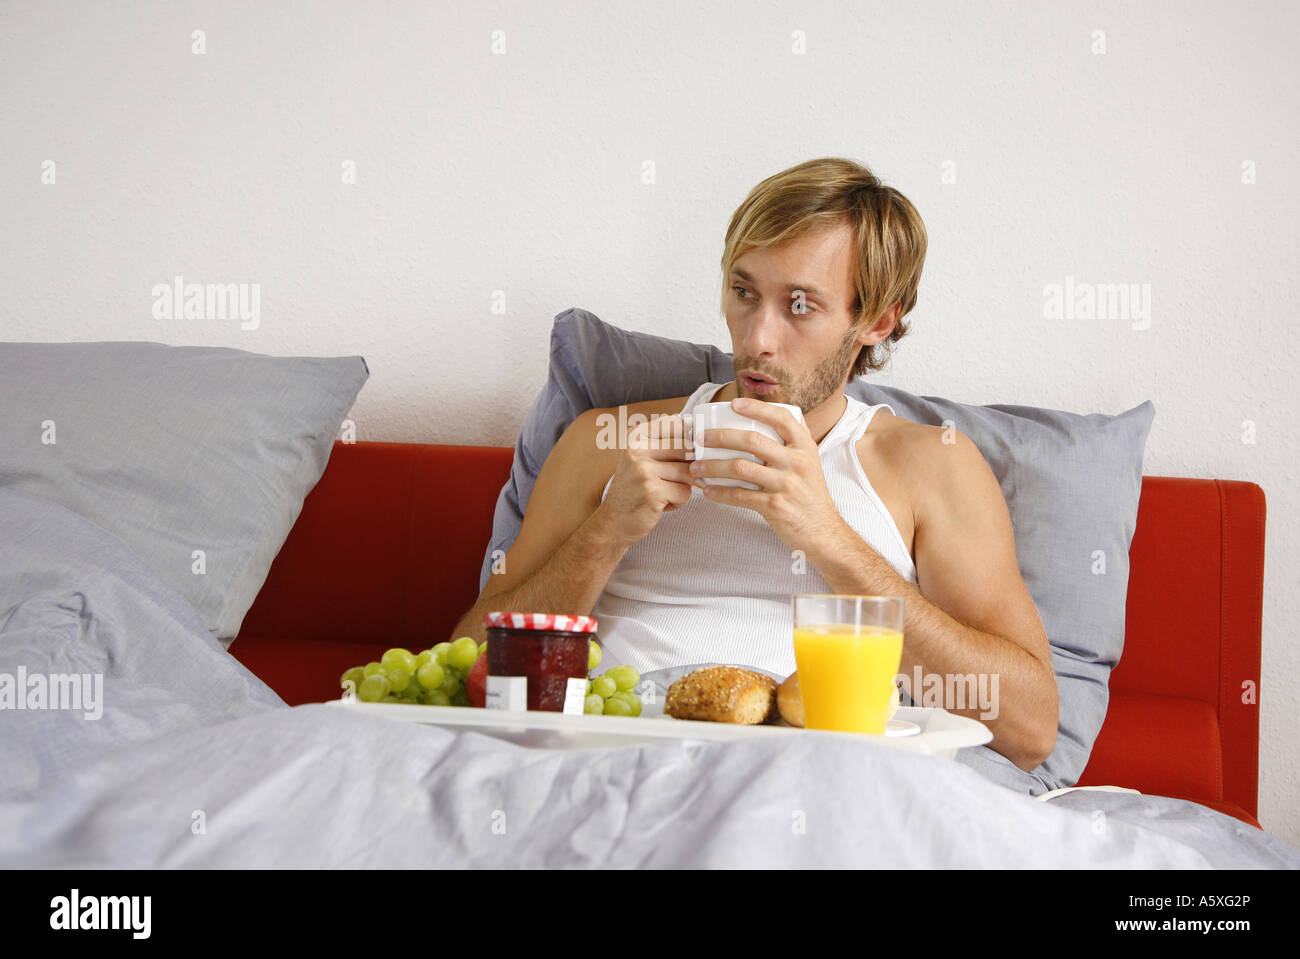 Young man having breakfast on bed portrait Stock Photo